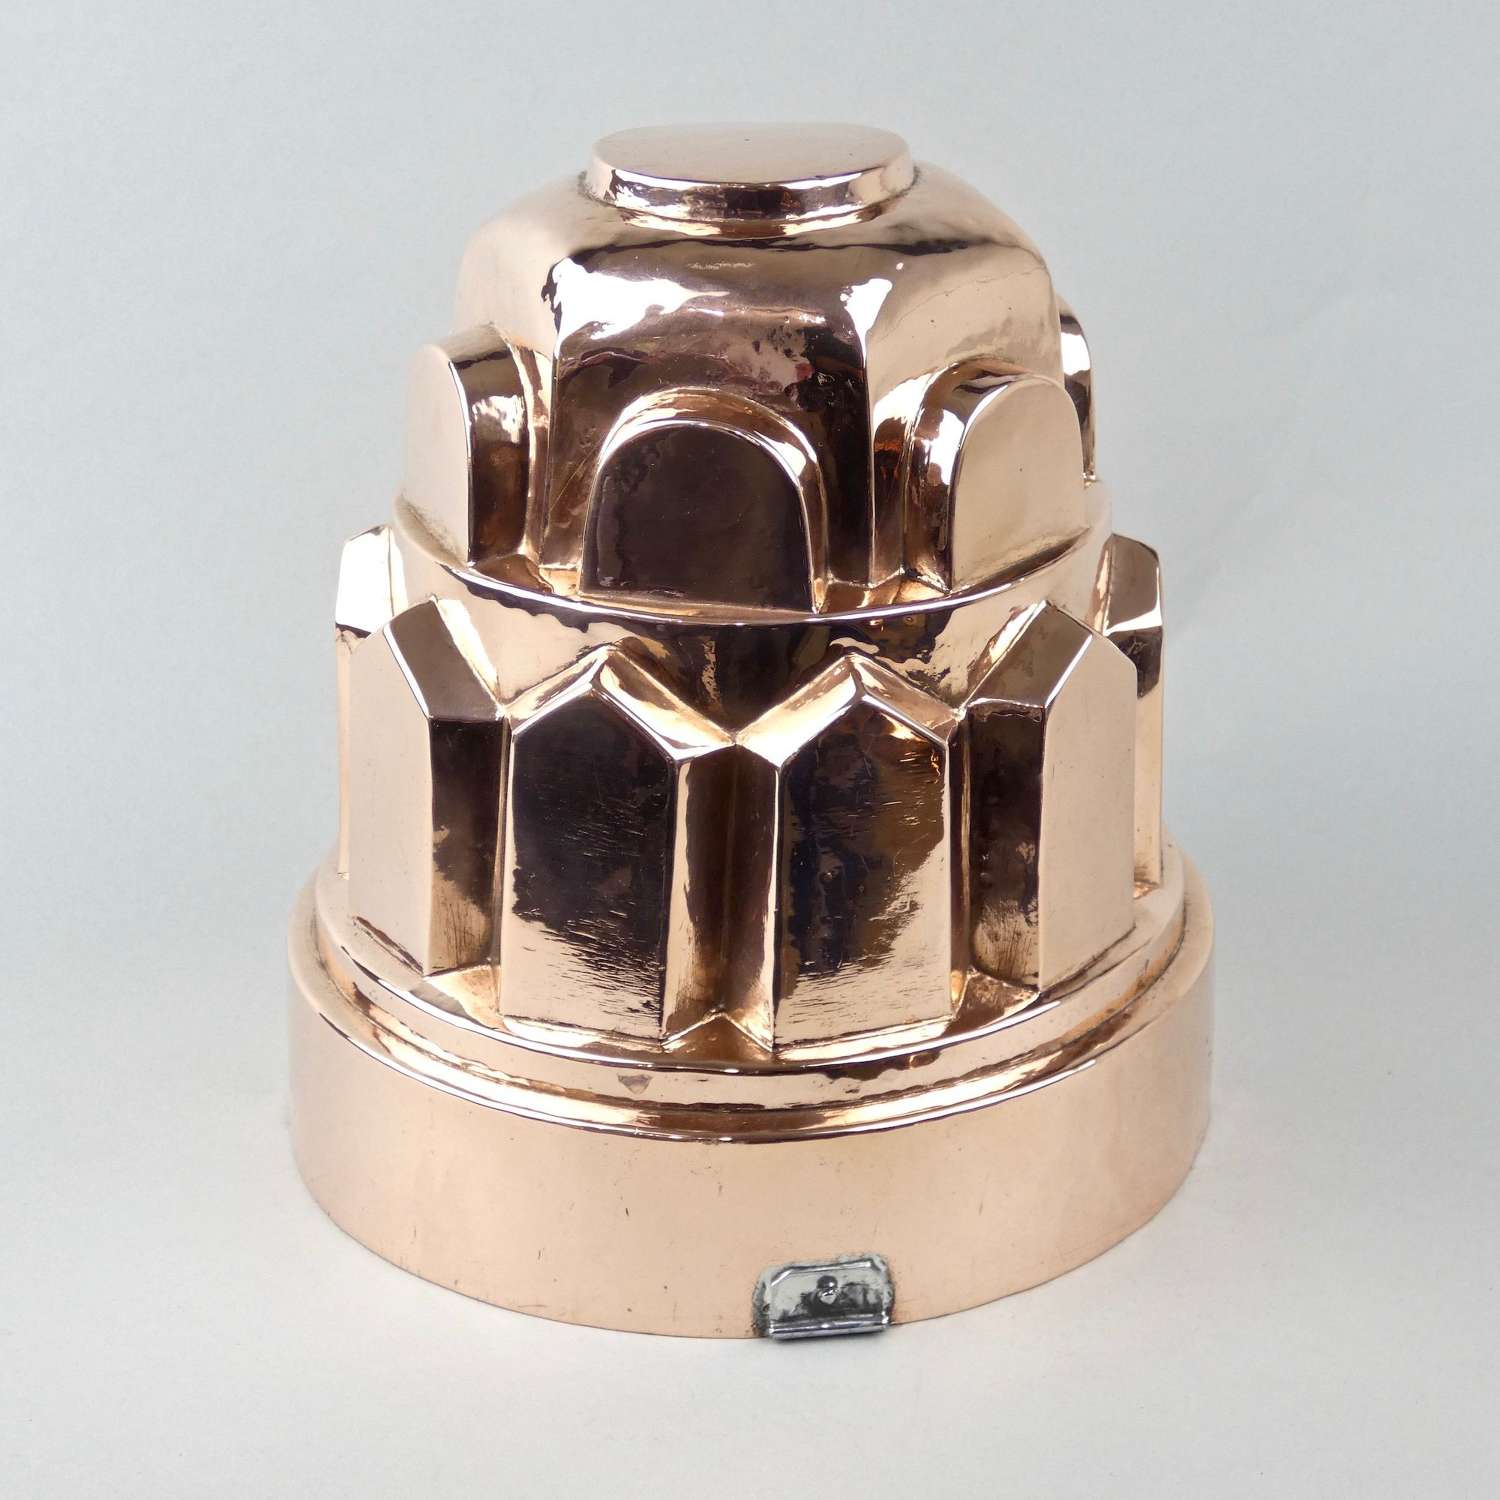 Fancy, French copper cake mould